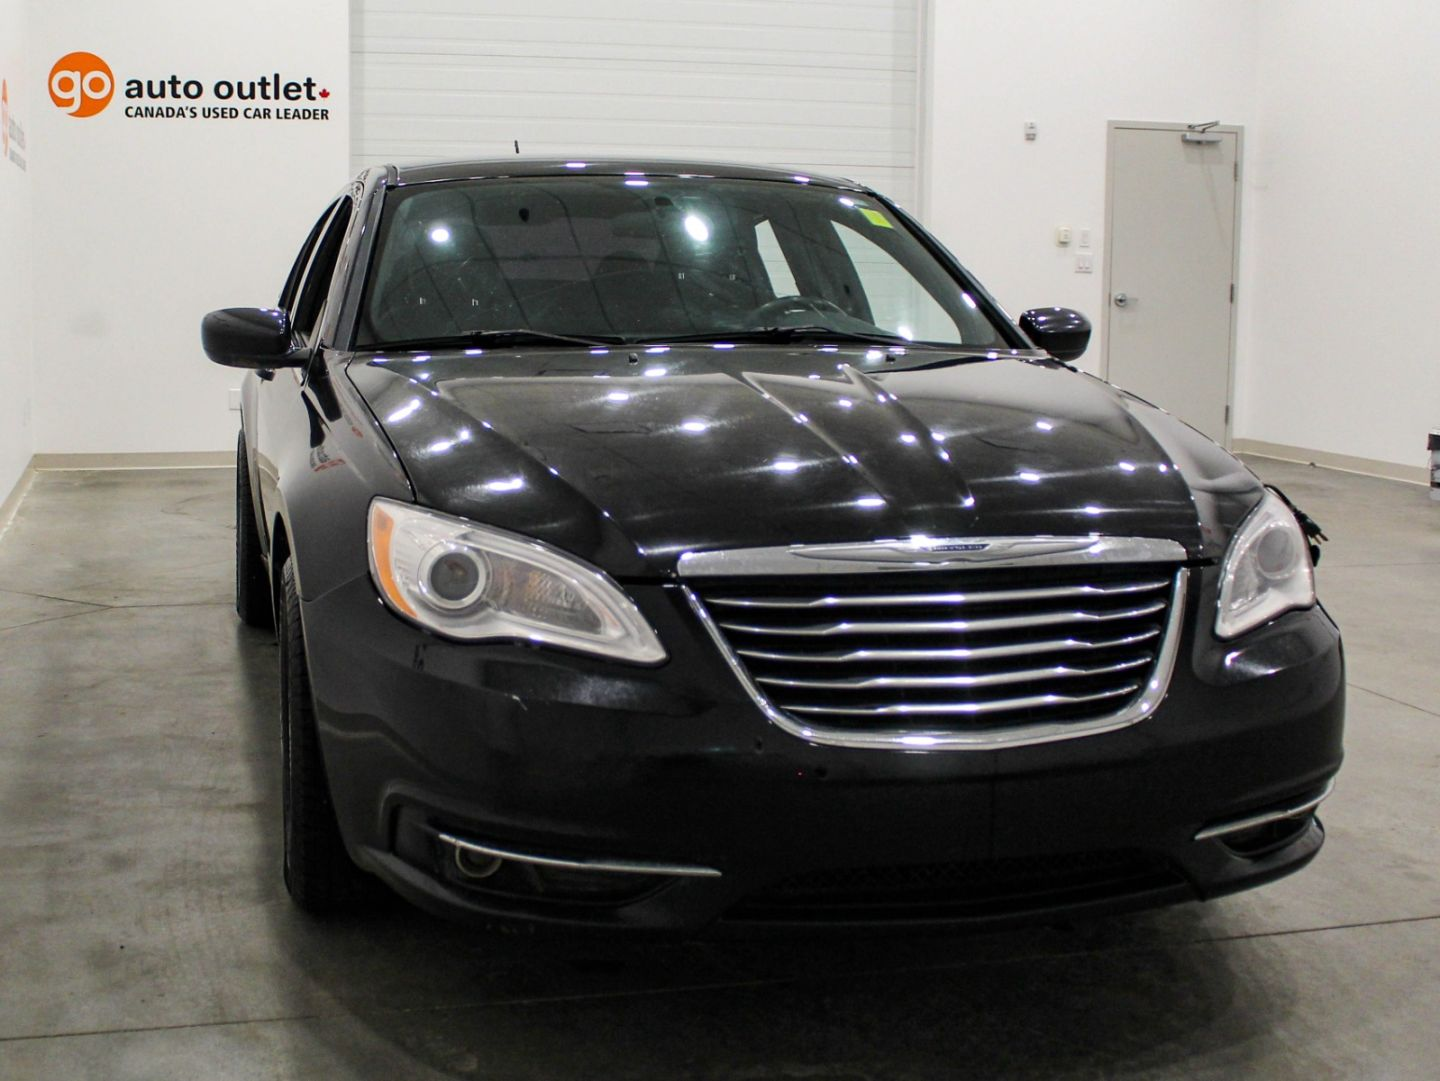 2014 Chrysler 200 Touring for sale in Edmonton, Alberta